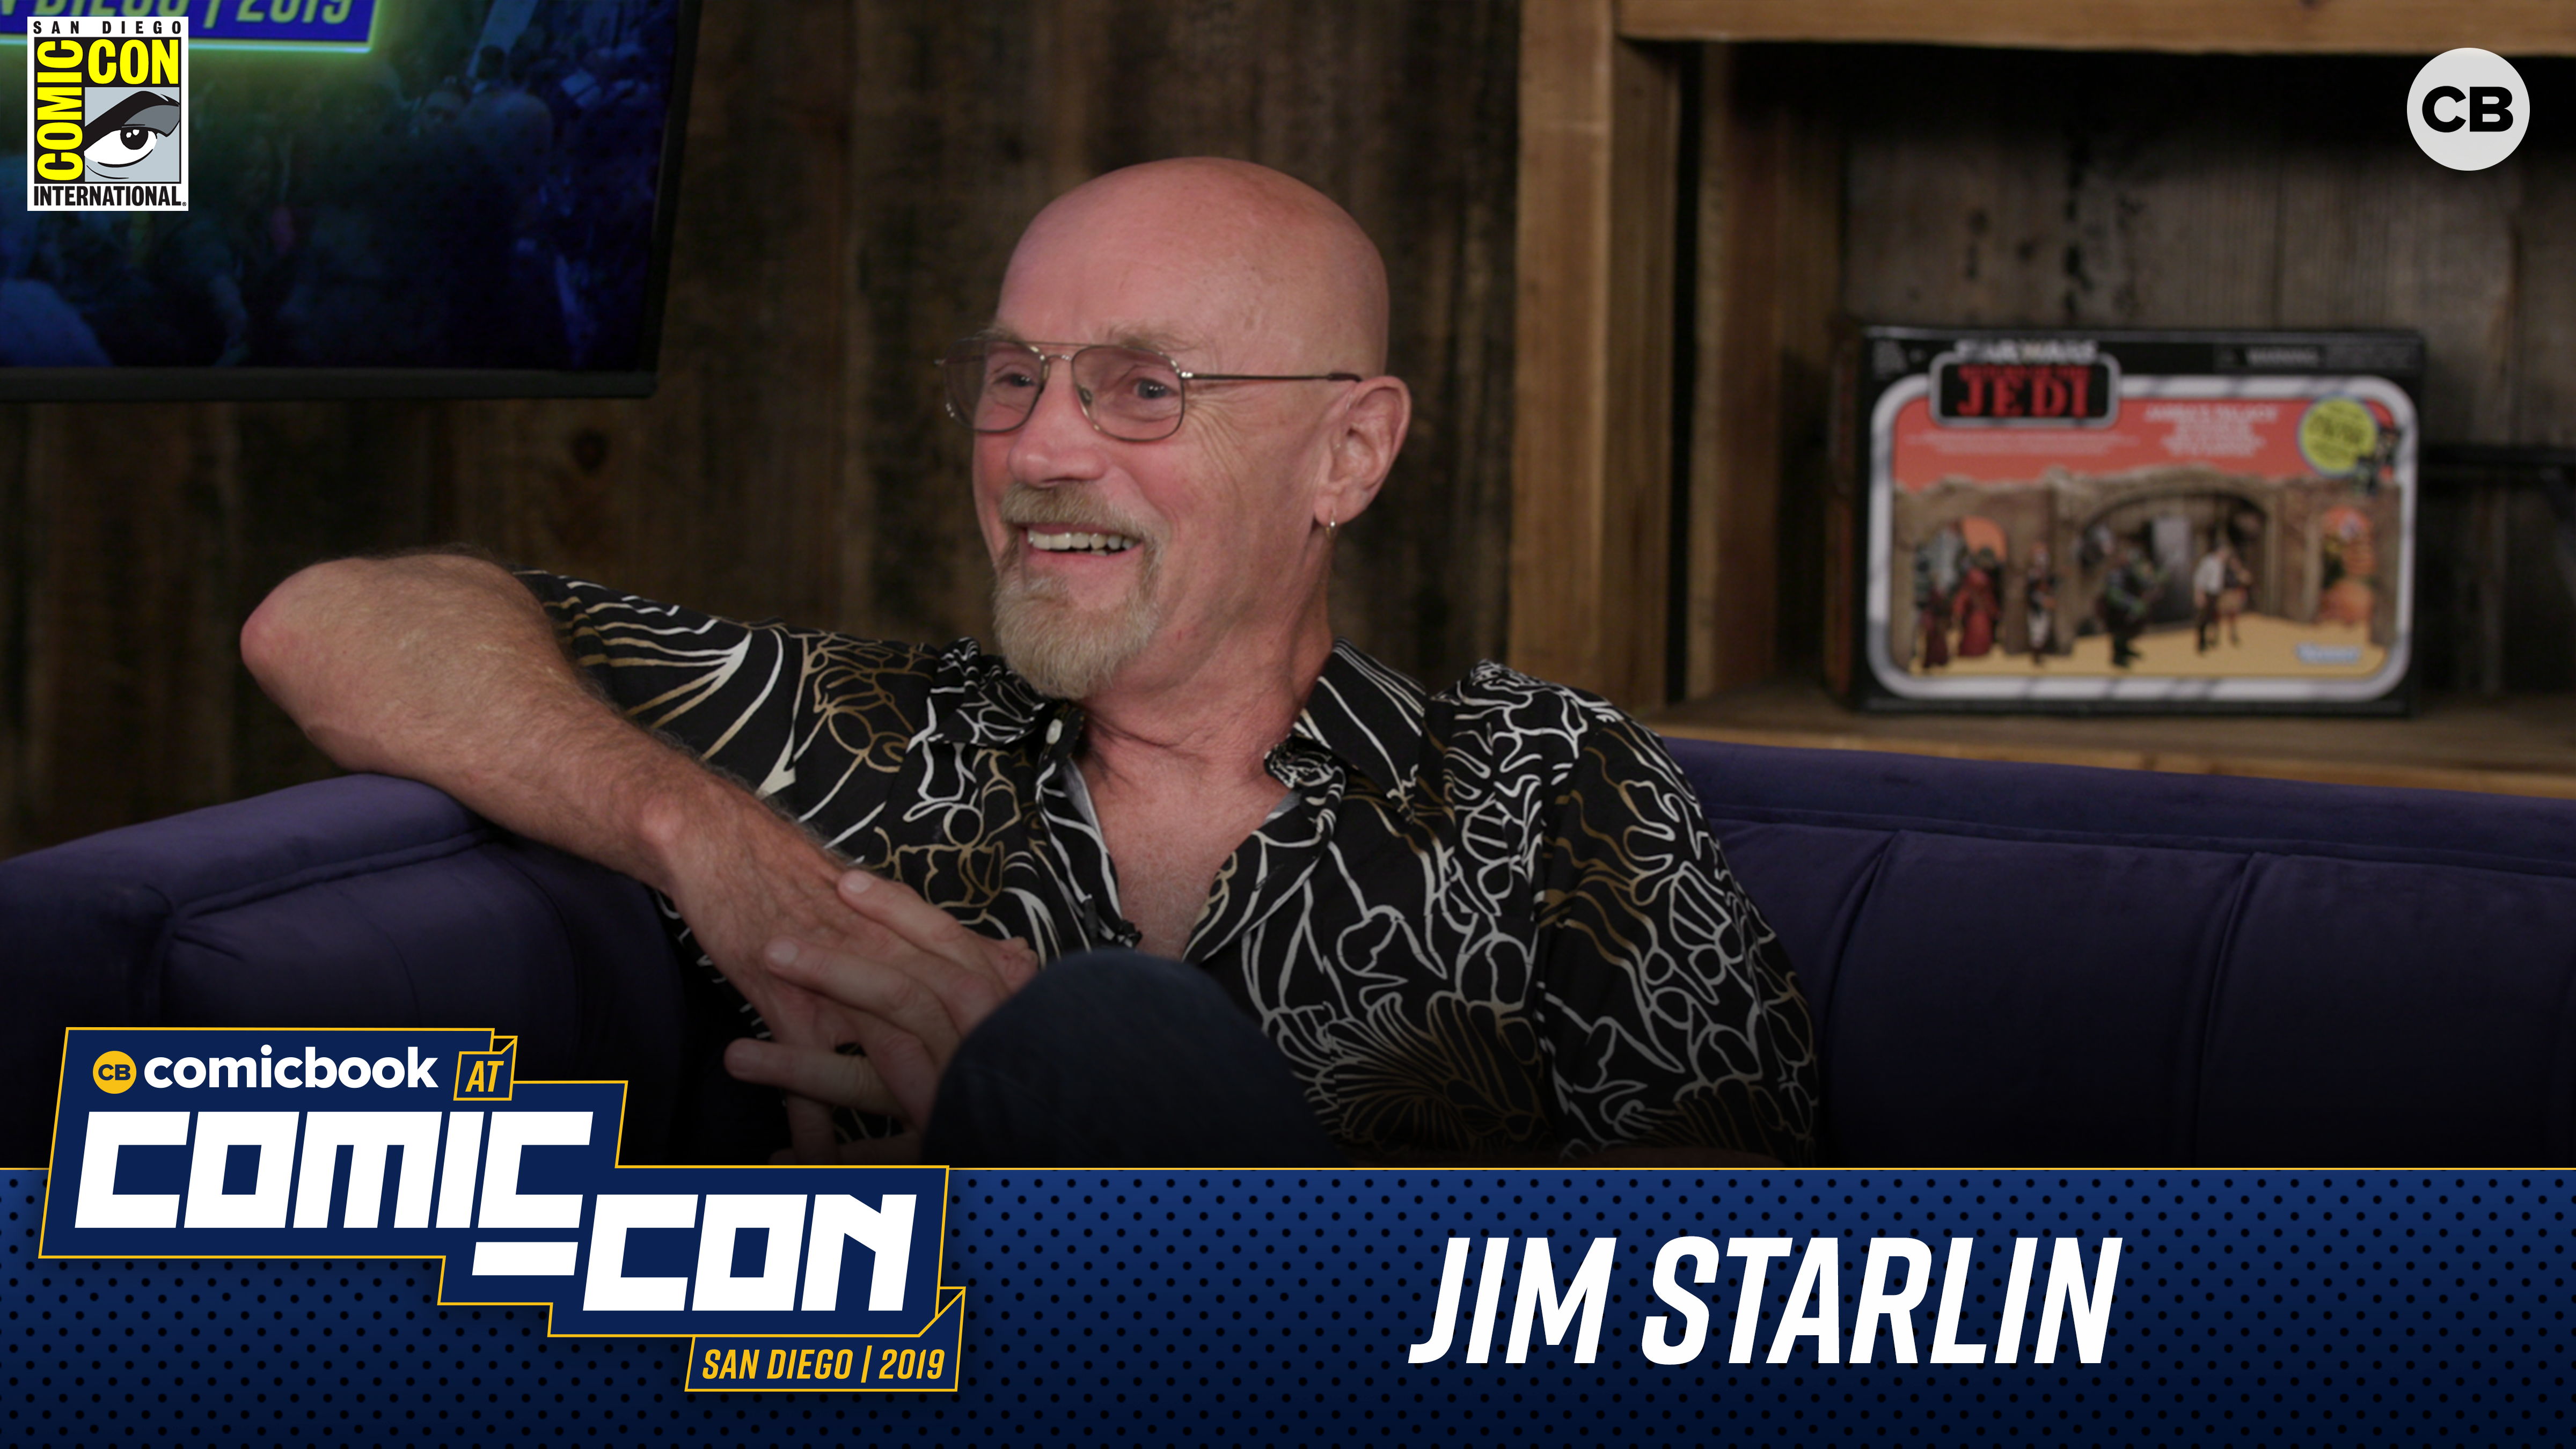 Jim Starlin - San Diego Comic-Con 2019 Interview screen capture